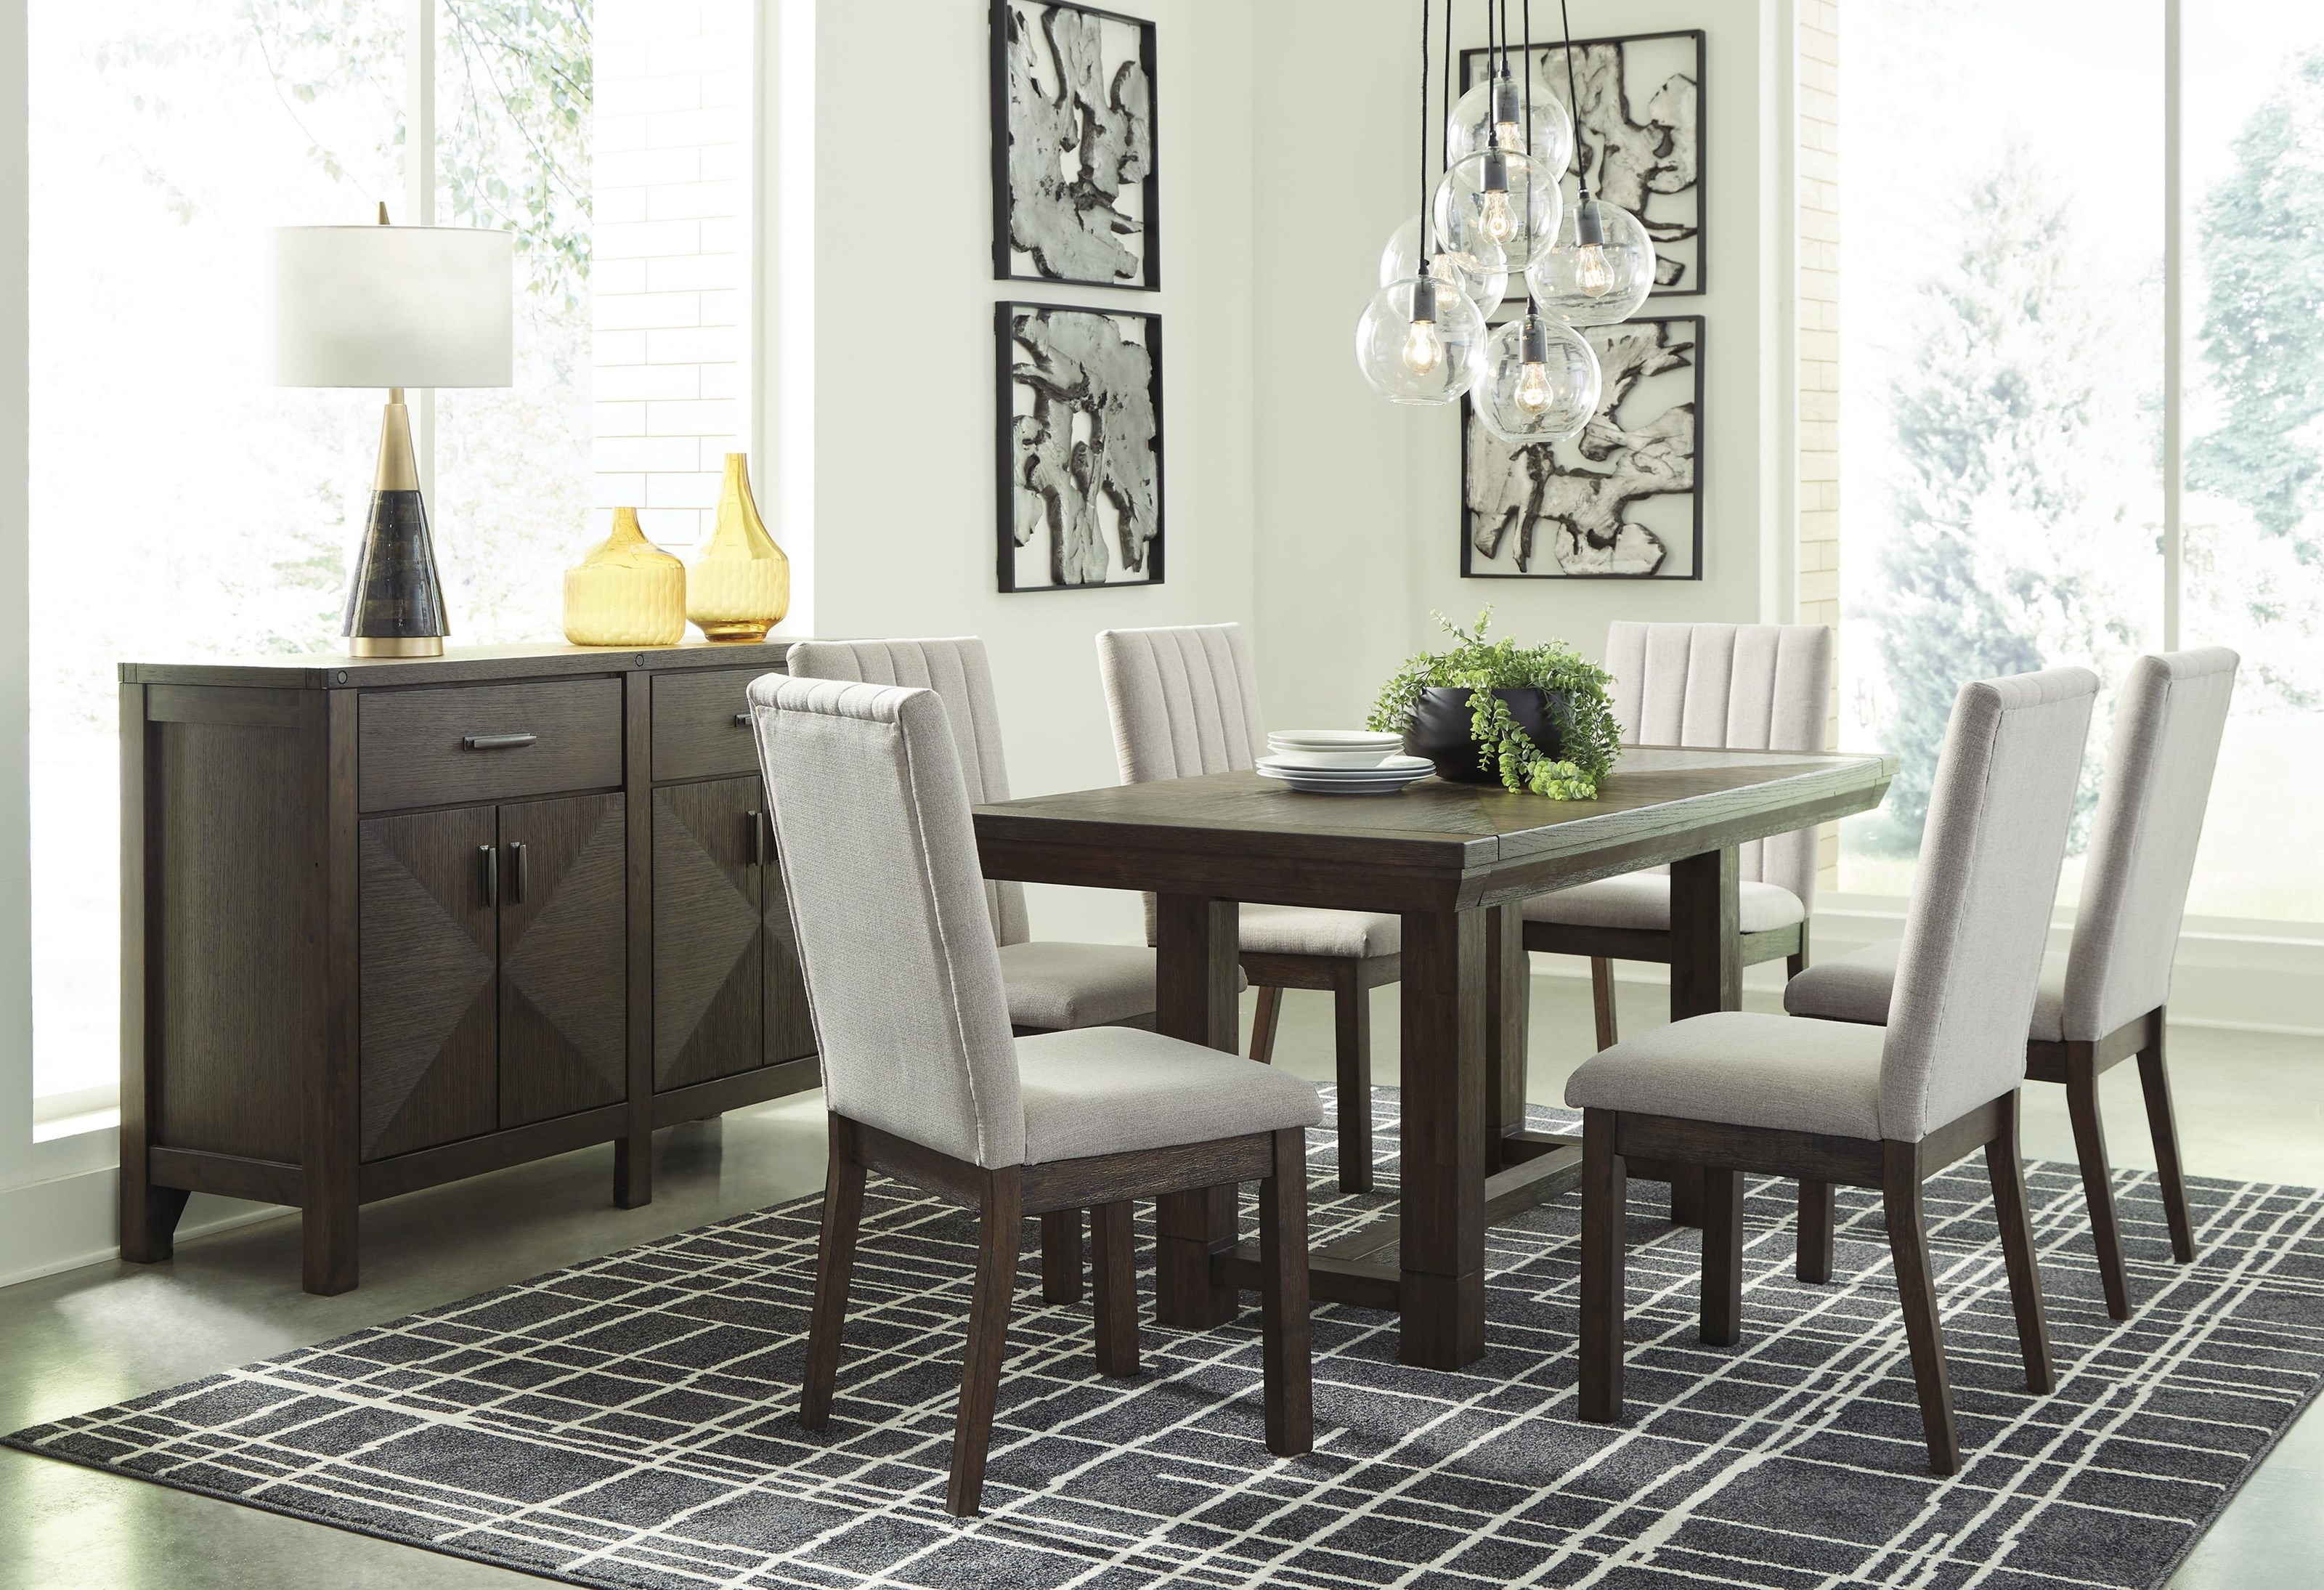 Picture of: Ashley Furniture Dellbeck D748 45 6×01 60 8 Pc Table 6 Uph Side Chairs And Server Set Sam Levitz Furniture Dining 7 Or More Piece Sets